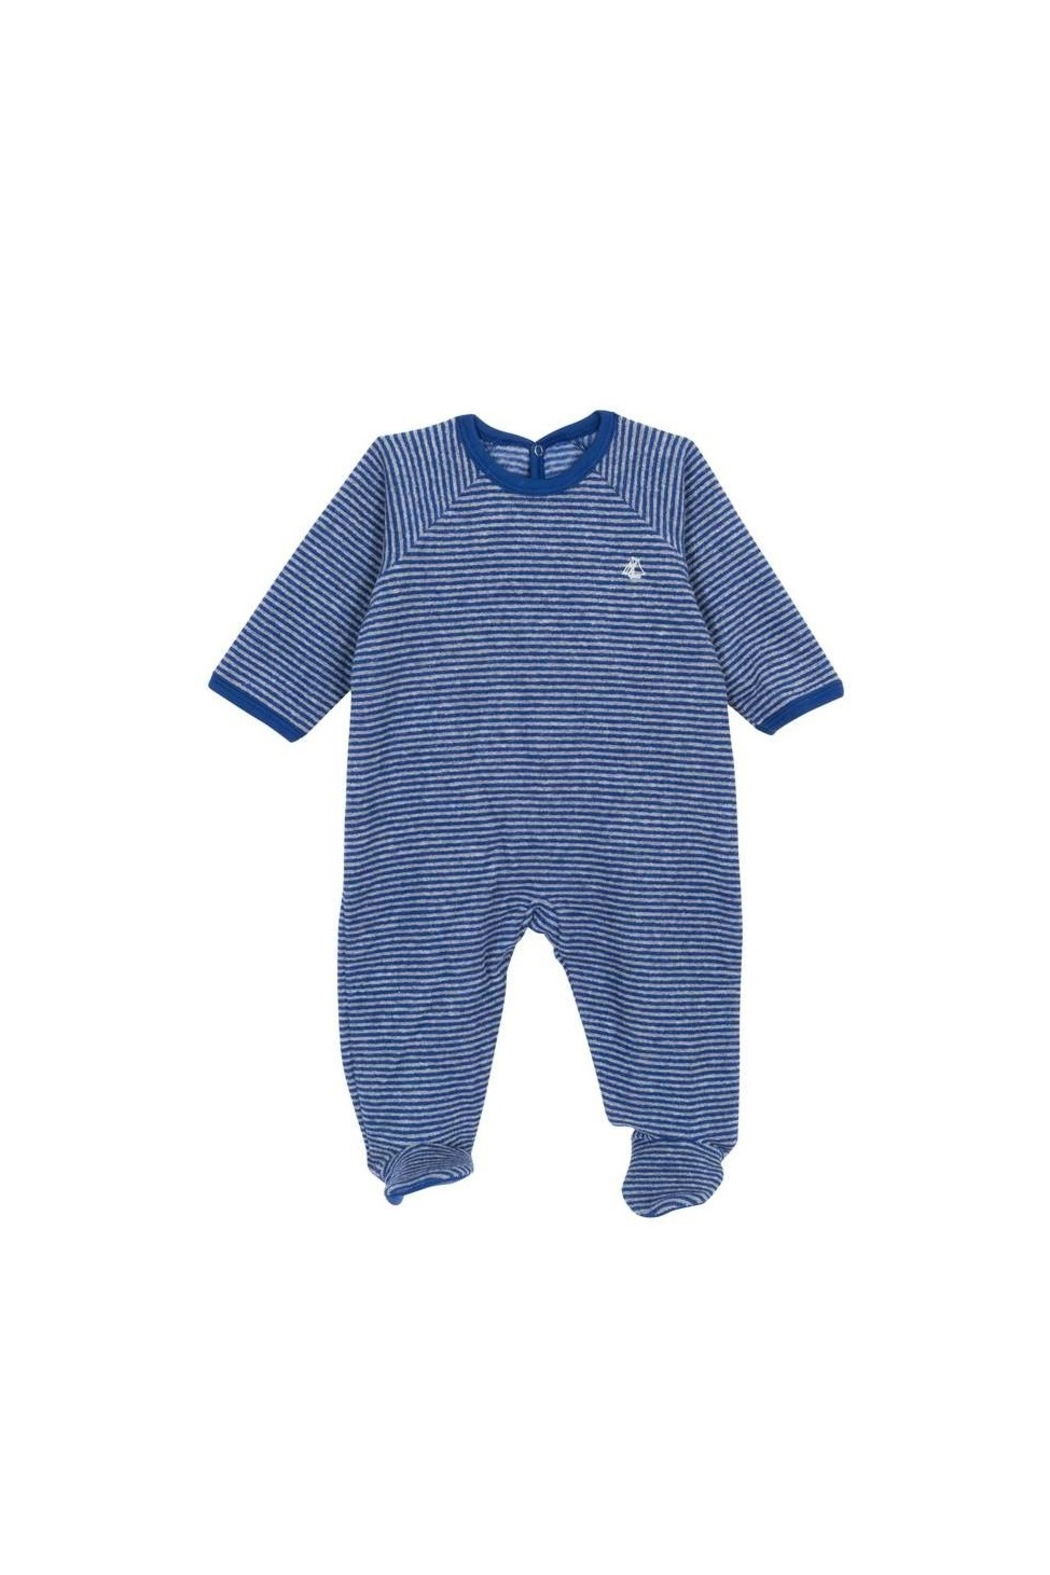 Petit Bateau - Unisex Baby Footie  - Striped terry sleeper with back drop snaps - Main Image